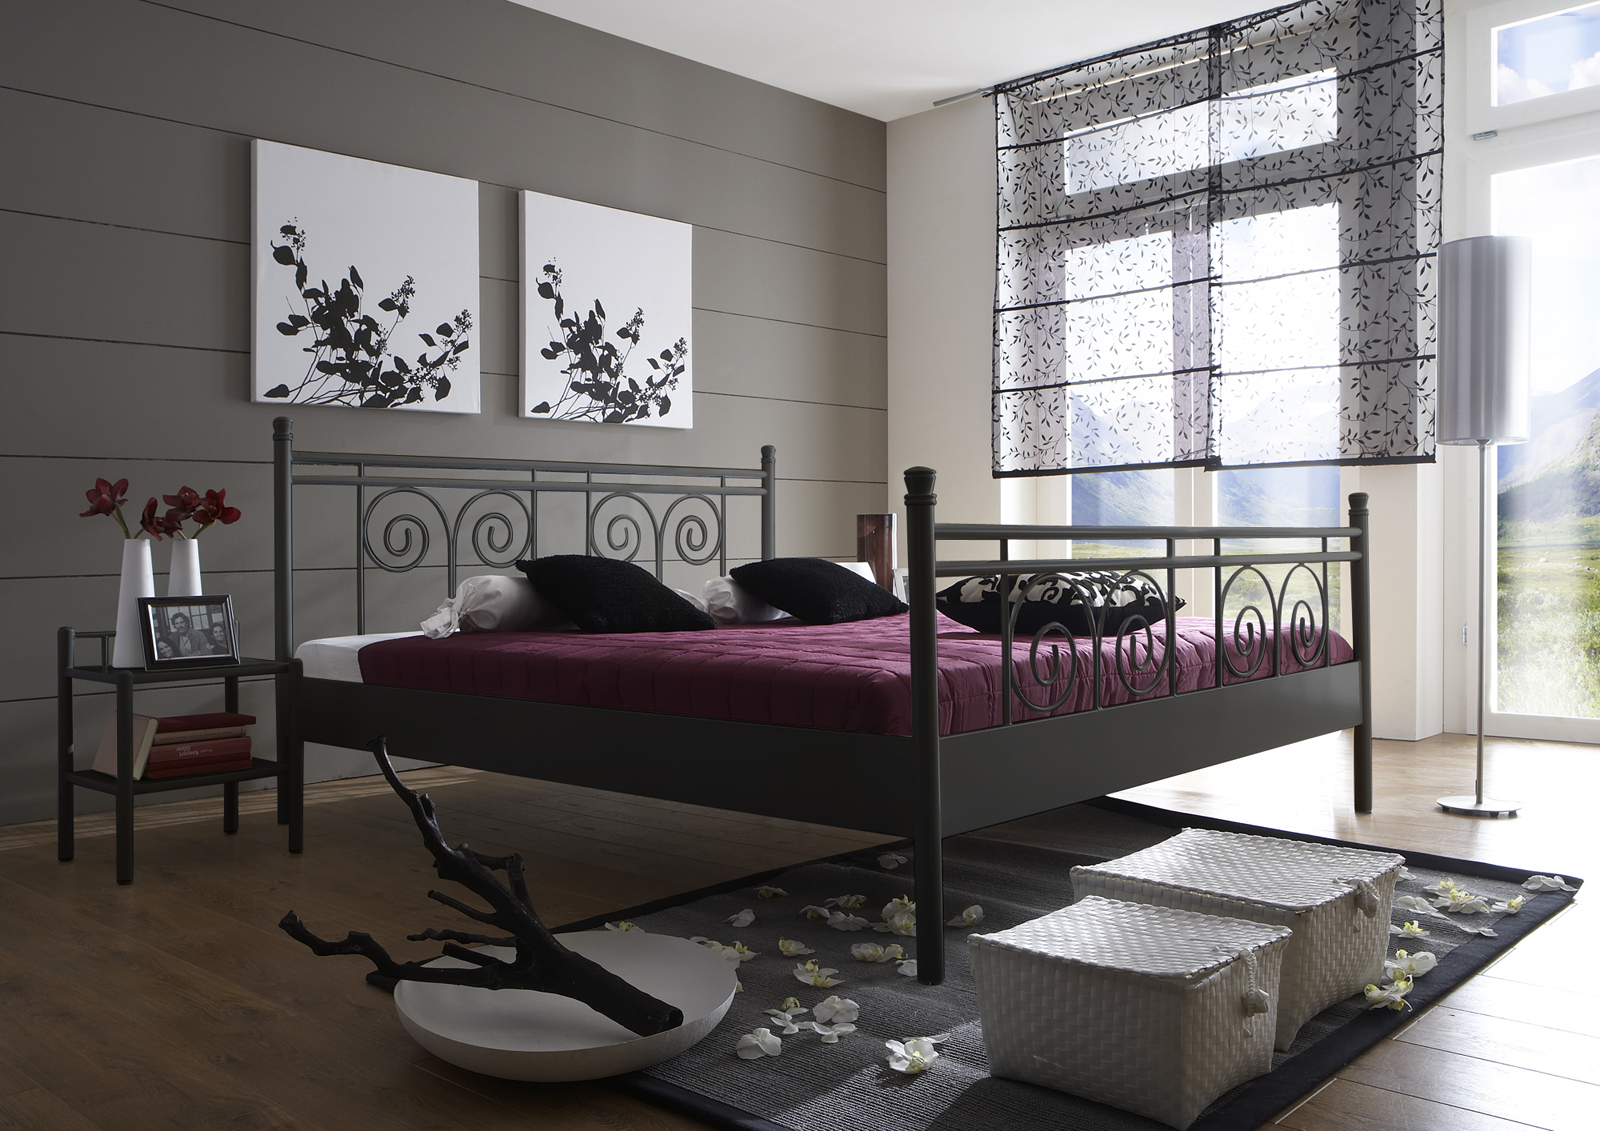 sam metallbett schwarz 160 x 200 cm rhodos g nstig. Black Bedroom Furniture Sets. Home Design Ideas